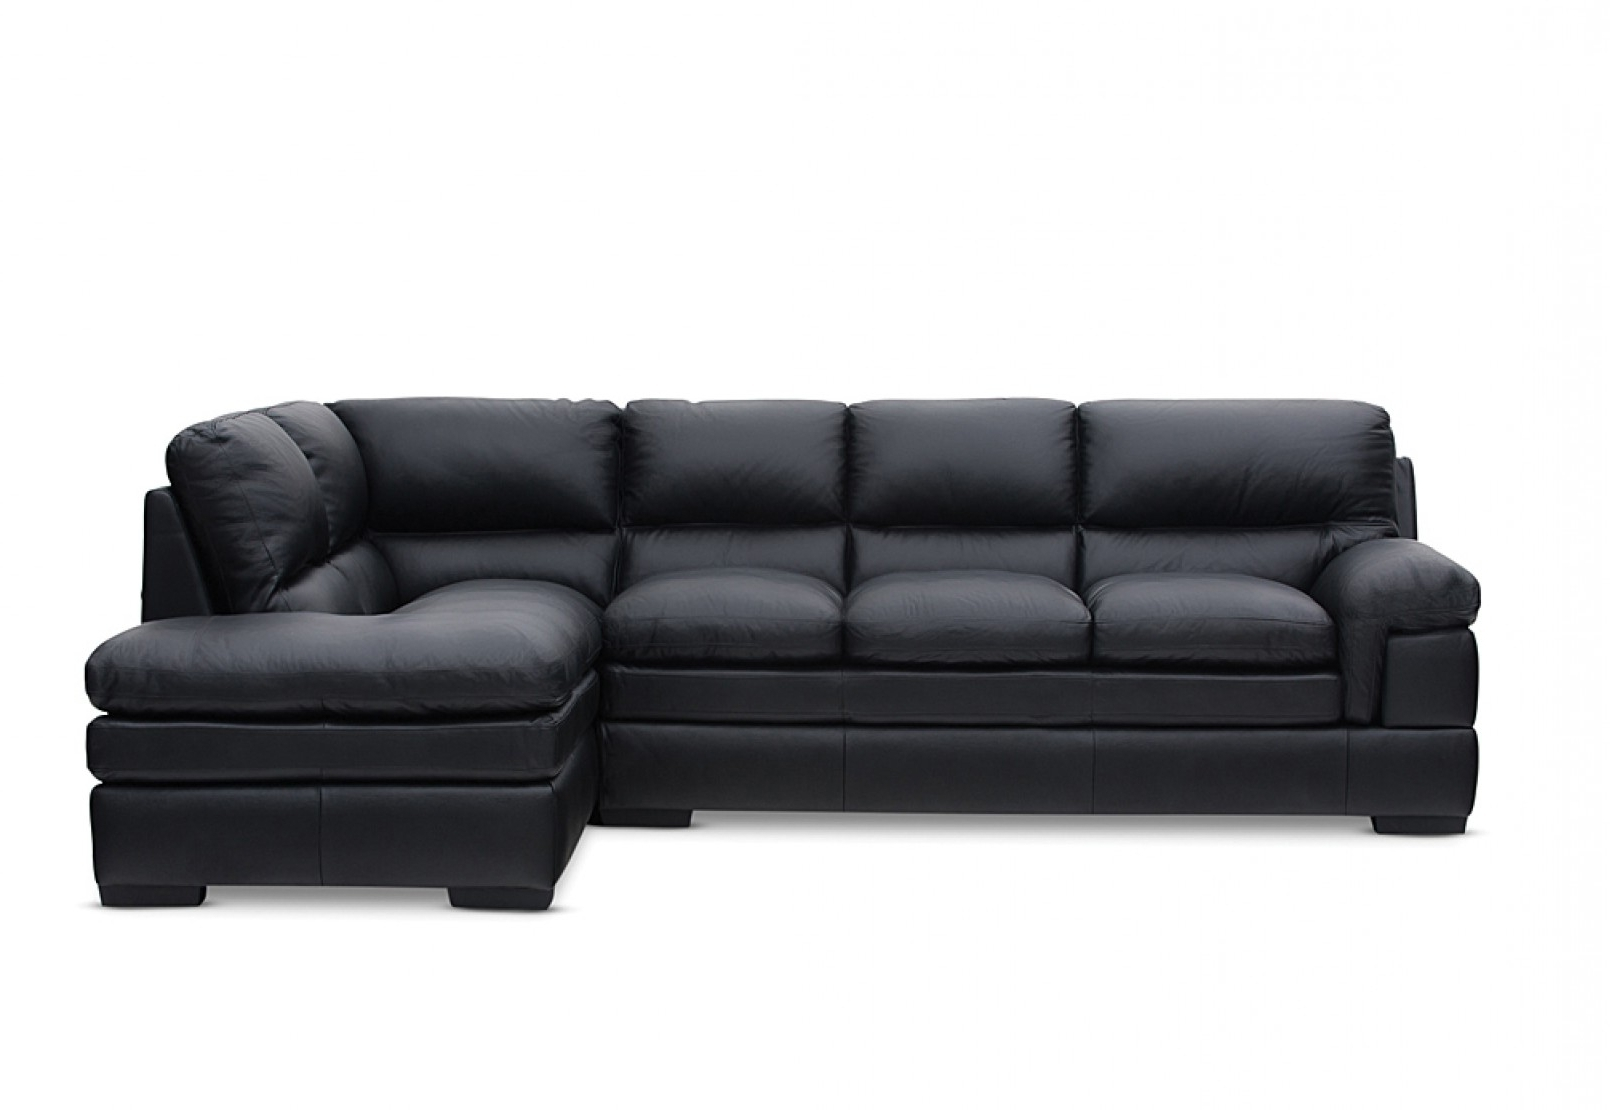 Preferred Corner Chaise Lounges With 6 Day Offers – Lounges & Sofas (View 9 of 15)